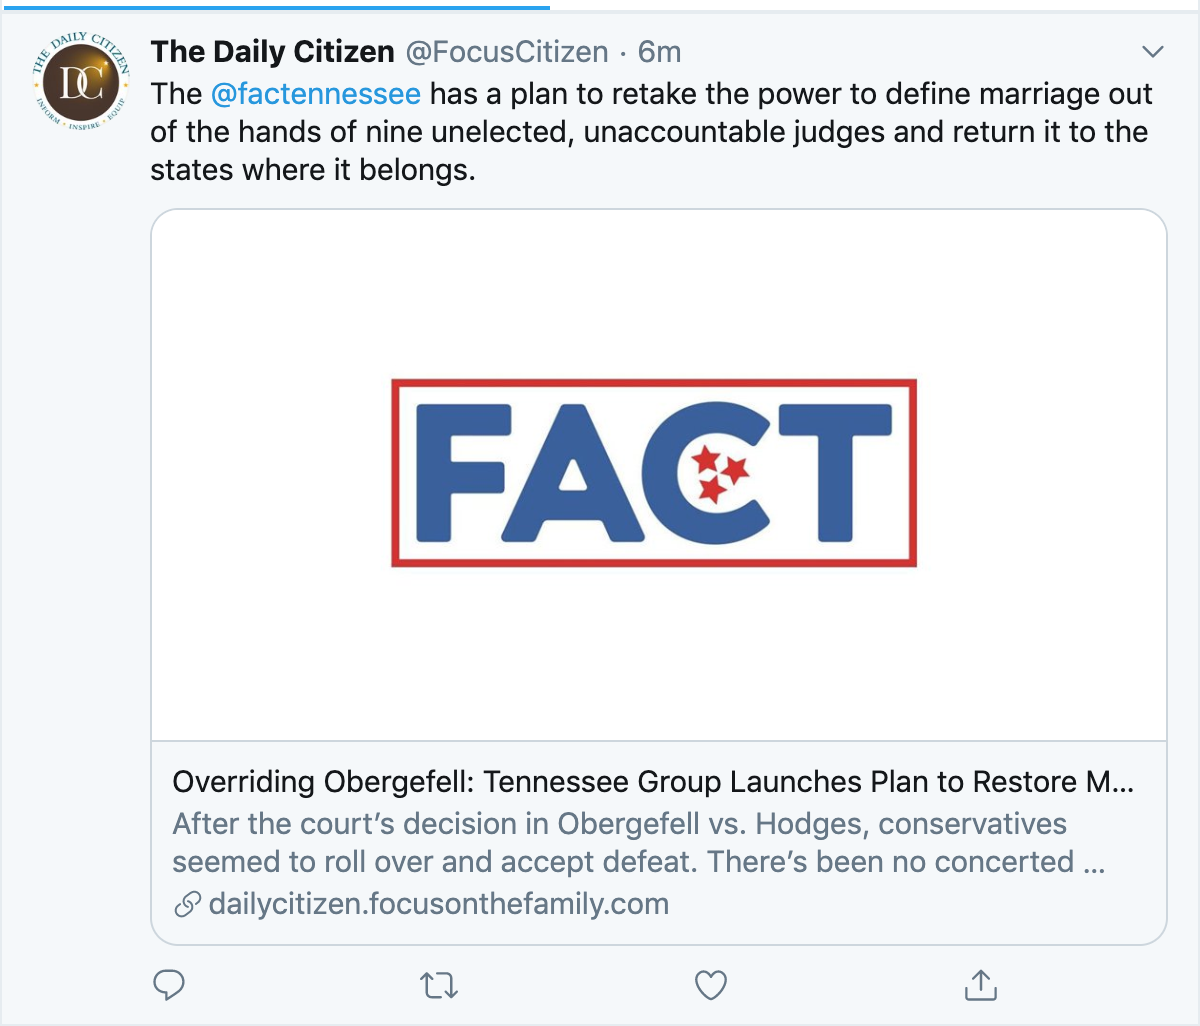 Daily-Citizen-Tweet-GodGivenMarriage-Initiative-102319